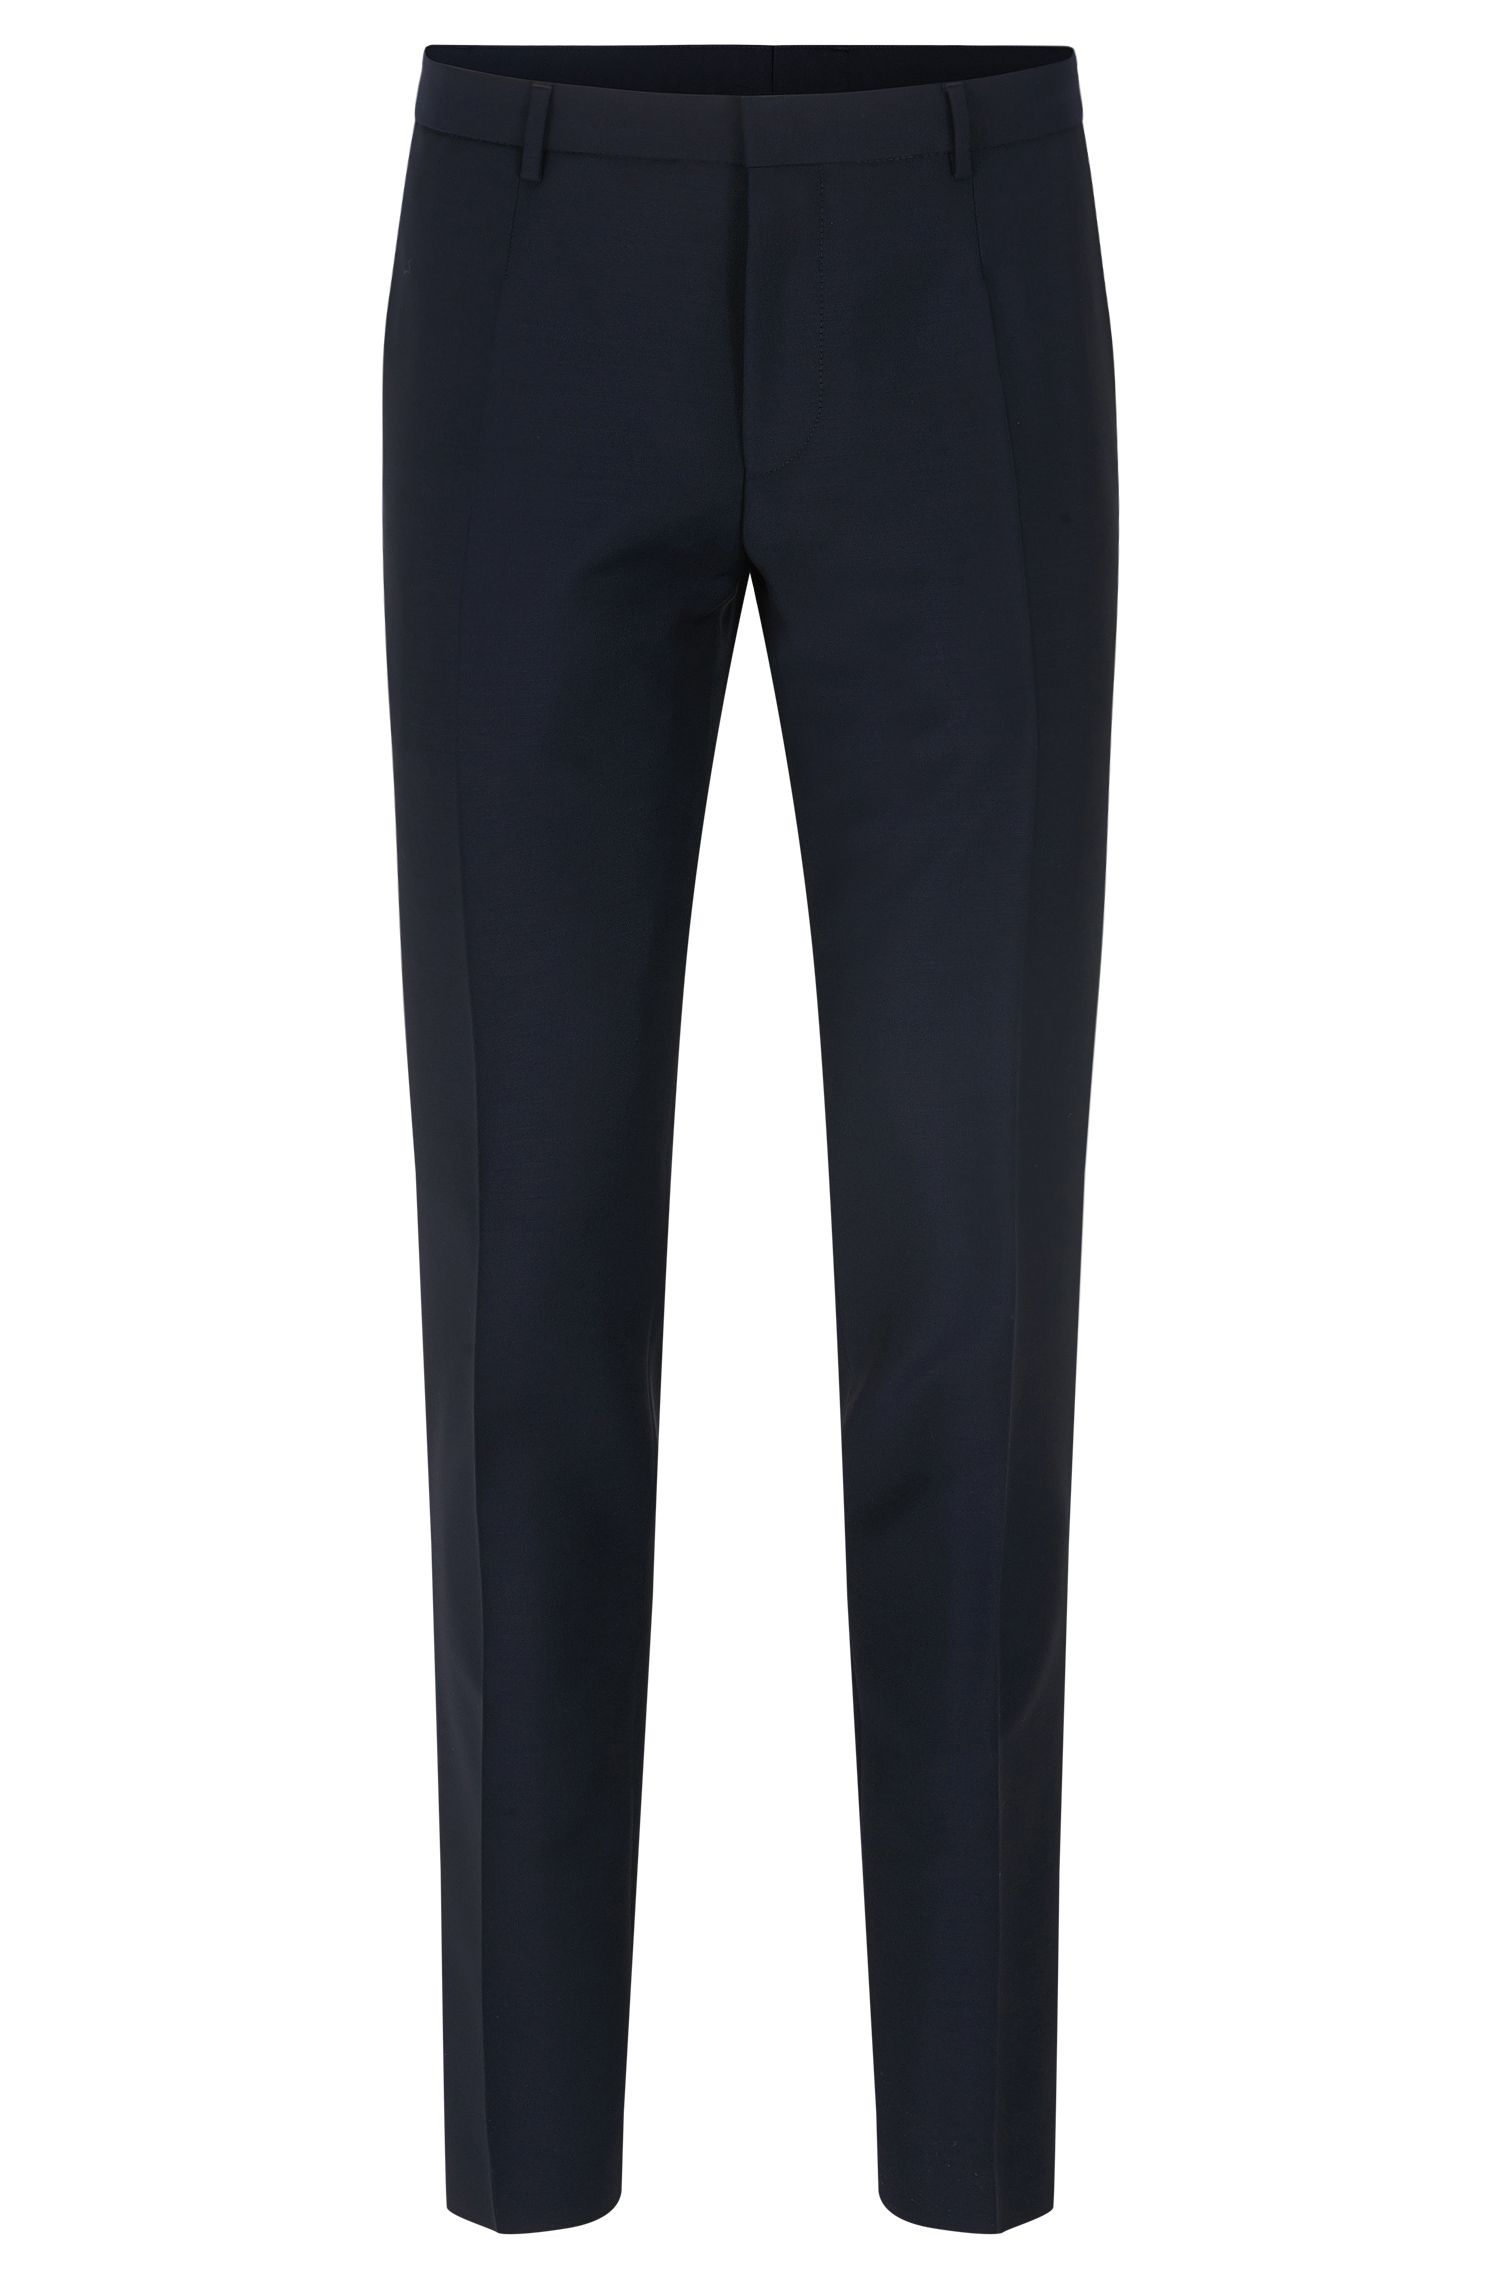 'Weikko' | Extra Slim Fit, Virgin Wool Mohair Pants